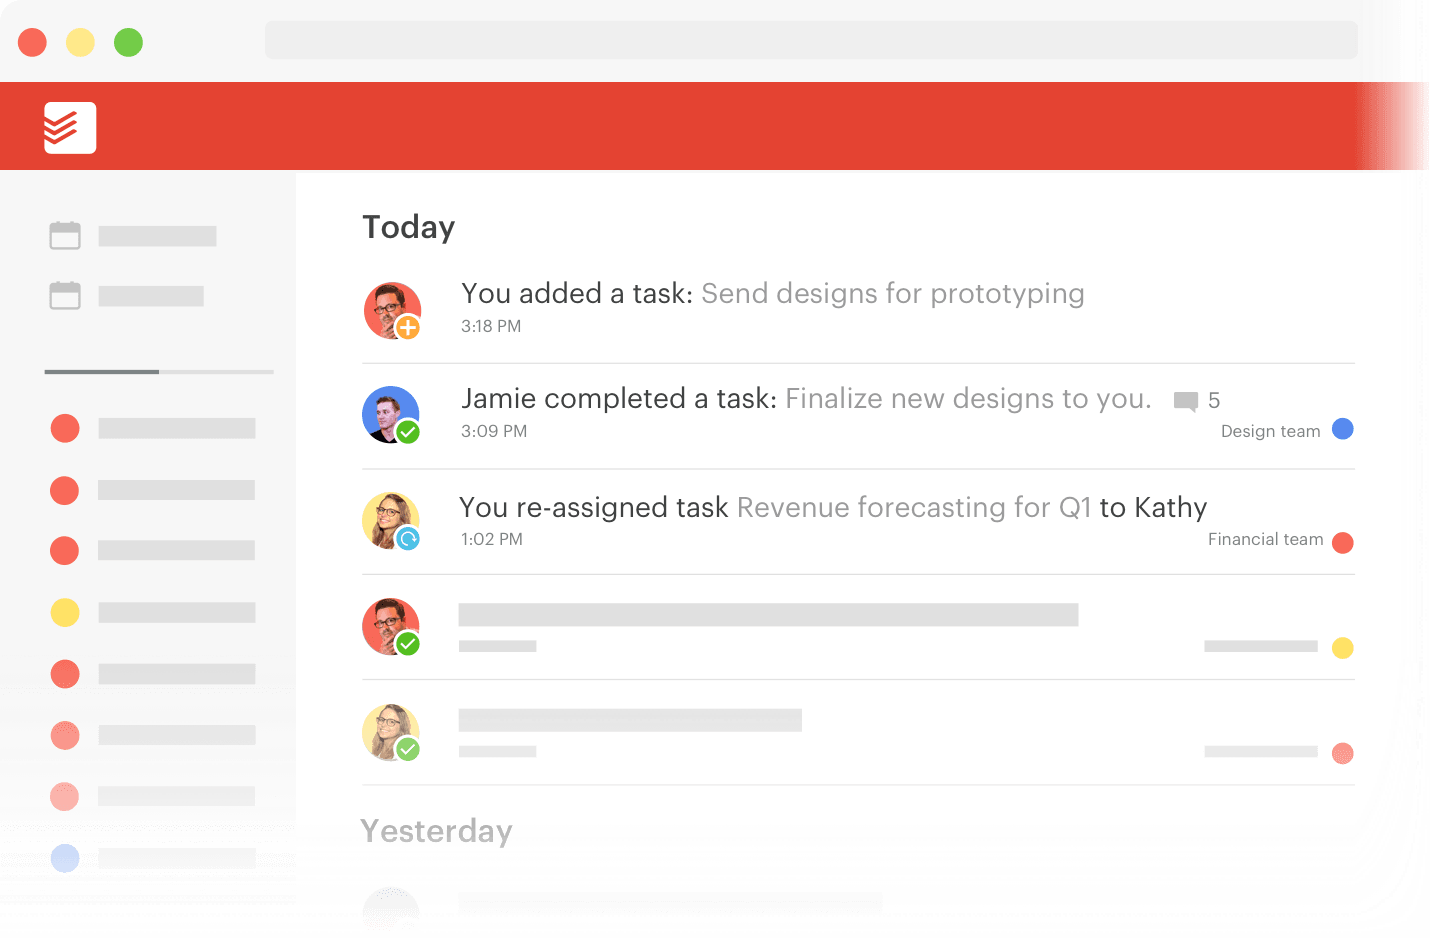 20 Best Time Management Apps for Small Business - Todoist